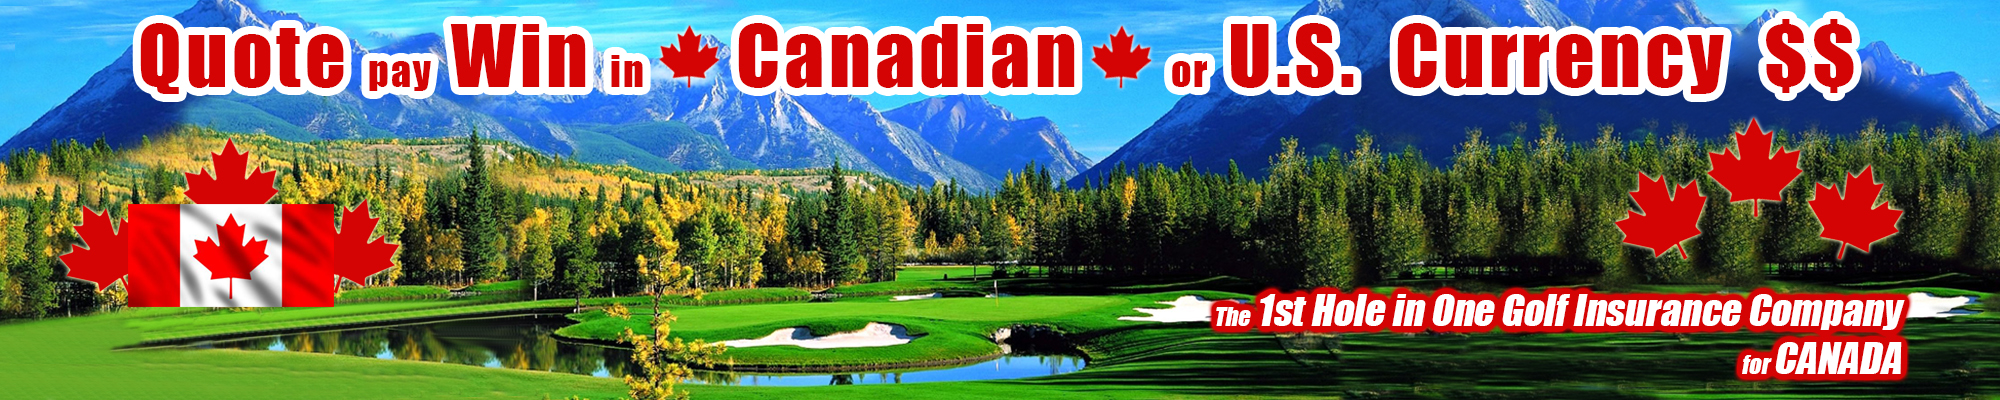 Canada Hole in One Insurance